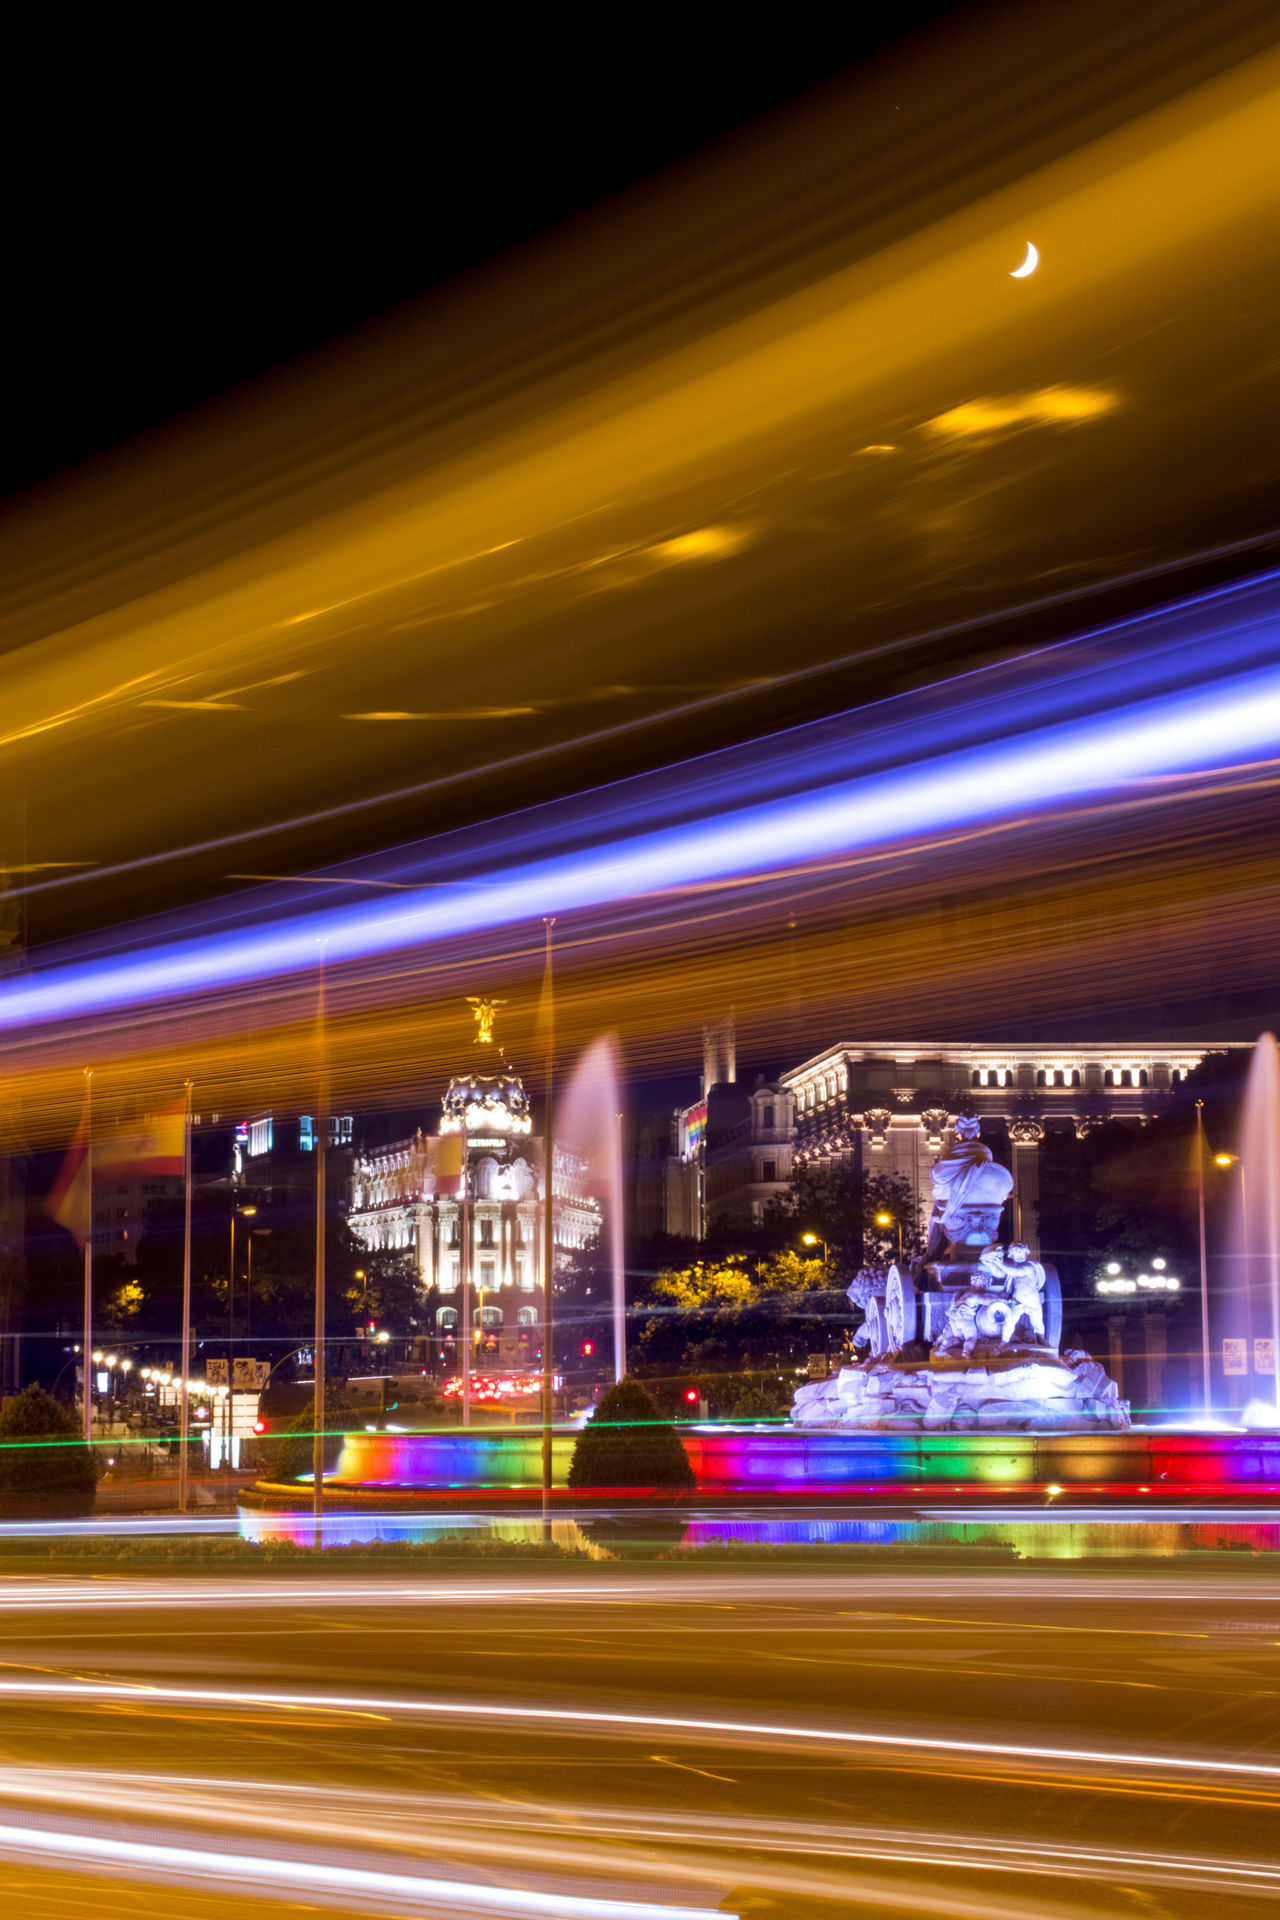 Architecture Blurred Motion Cibeles City Colorful Fountain High Street Illuminated Lgbt Lgbt Pride Light Trail Long Exposure Motion Neon Night Night Lights No People Outdoors Pride Road Speed Street Street Light